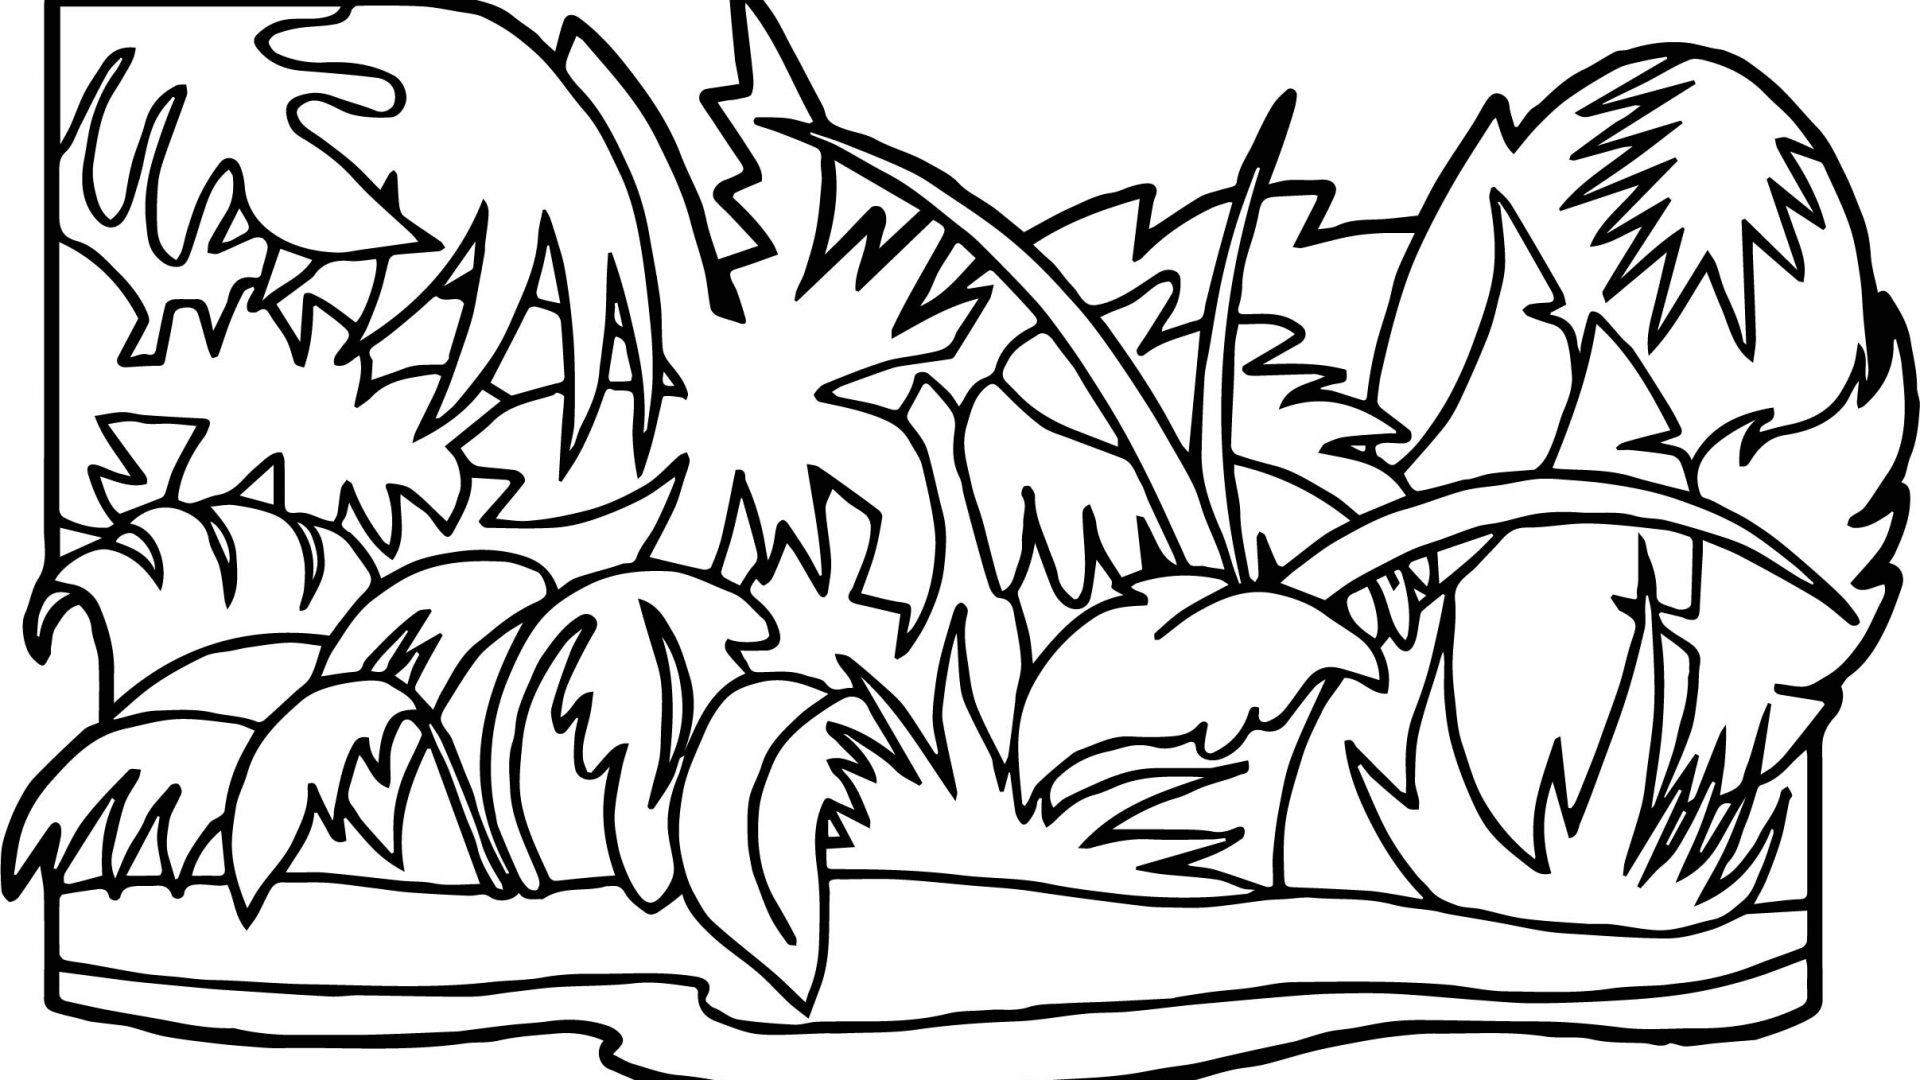 1920x1080 Jungle Book Coloring Pages Disney Photoshot Gorgeous Beautiful